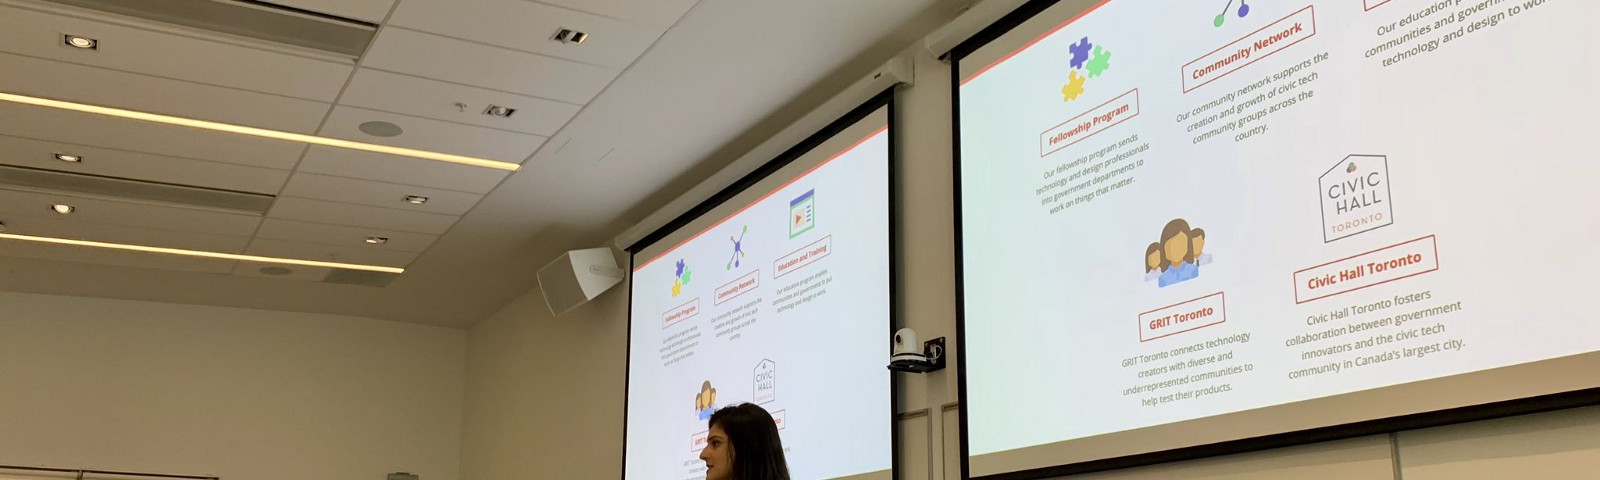 Sabrina Dominguez and Meha Shah  in front of a slide deck showing Code for Canada's various programs.